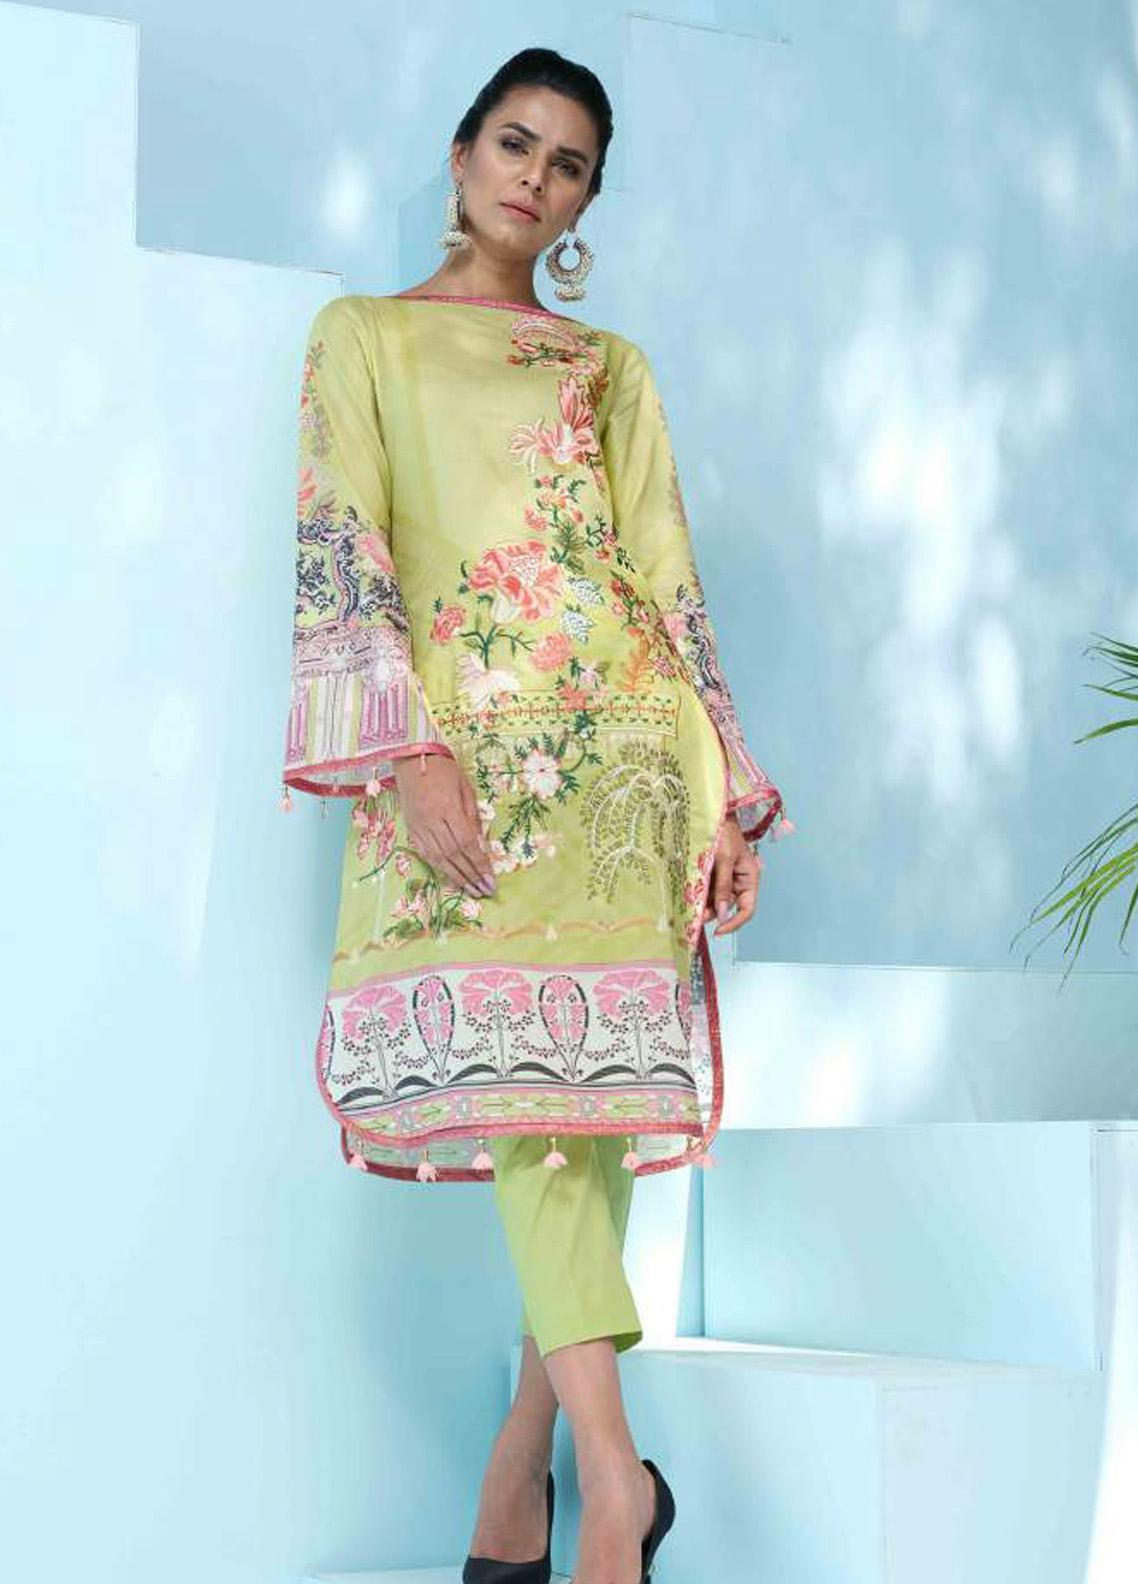 Florence by Rang Rasiya Embroidered Lawn Unstitched 3 Piece Suit RR20SF F541 - Spring / Summer Collection